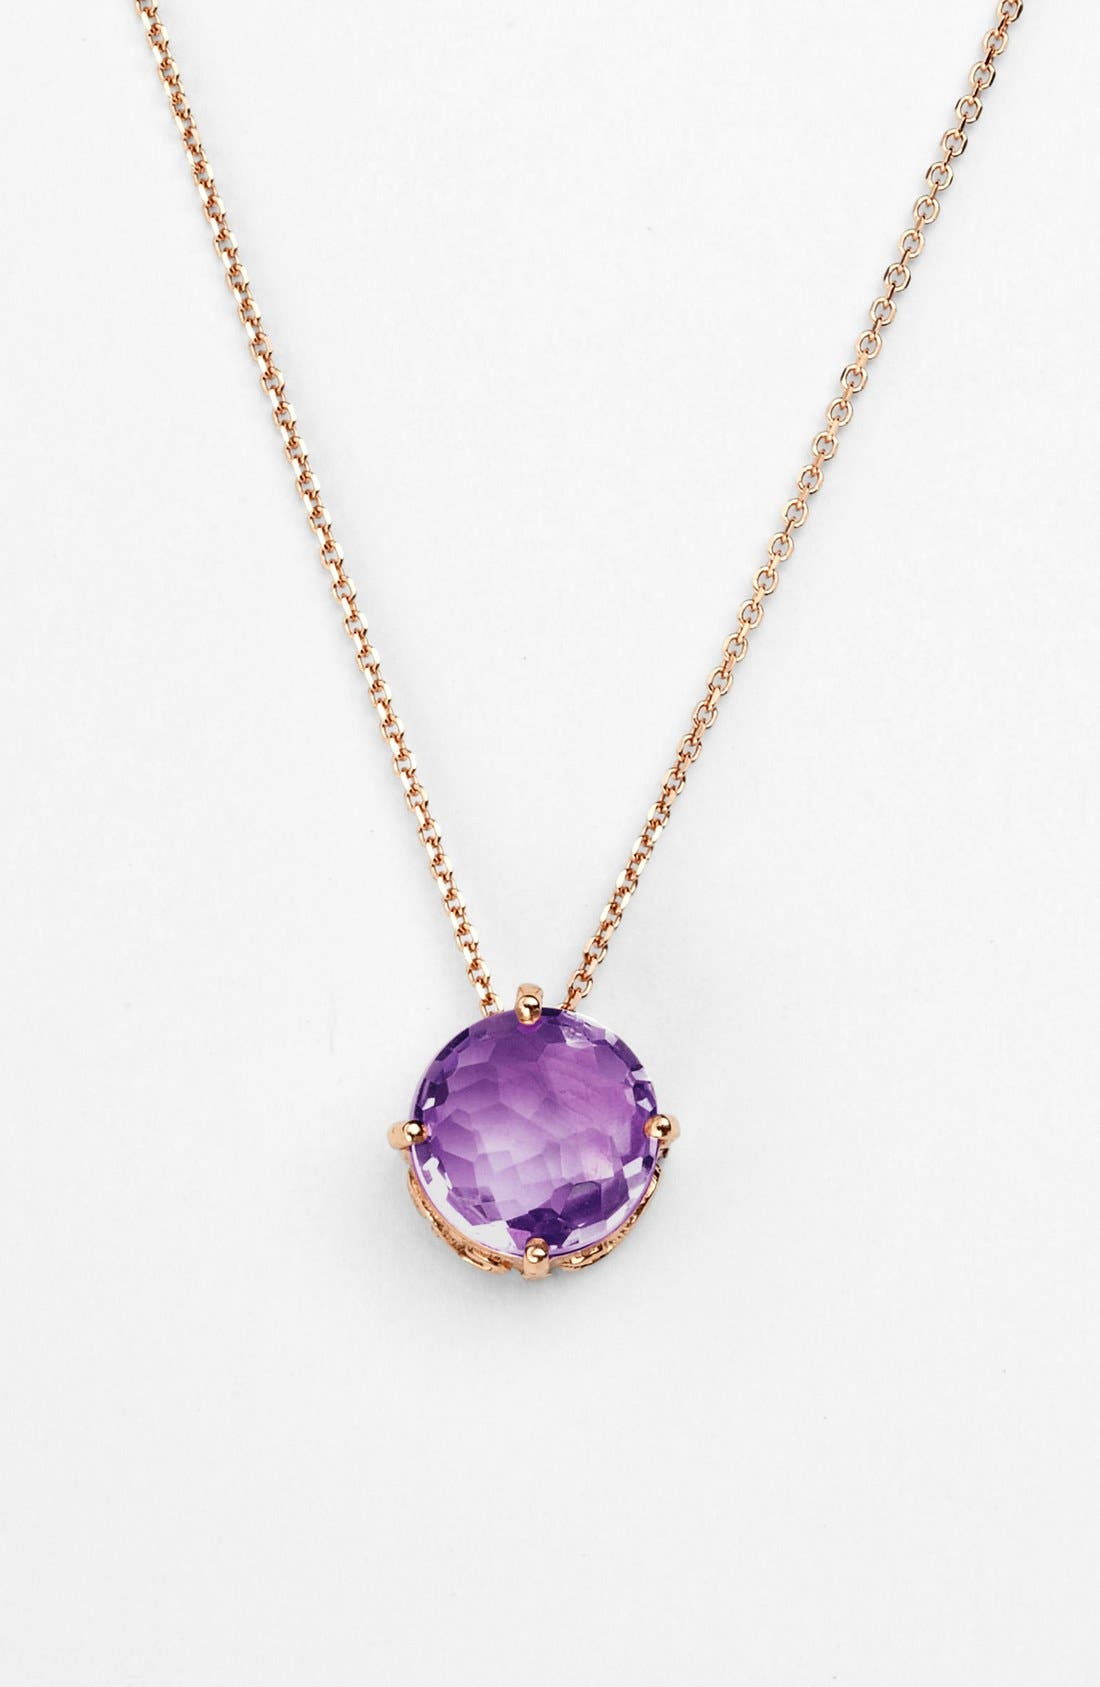 Main Image - KALAN by Suzanne Kalan Amethyst Pendant Necklace